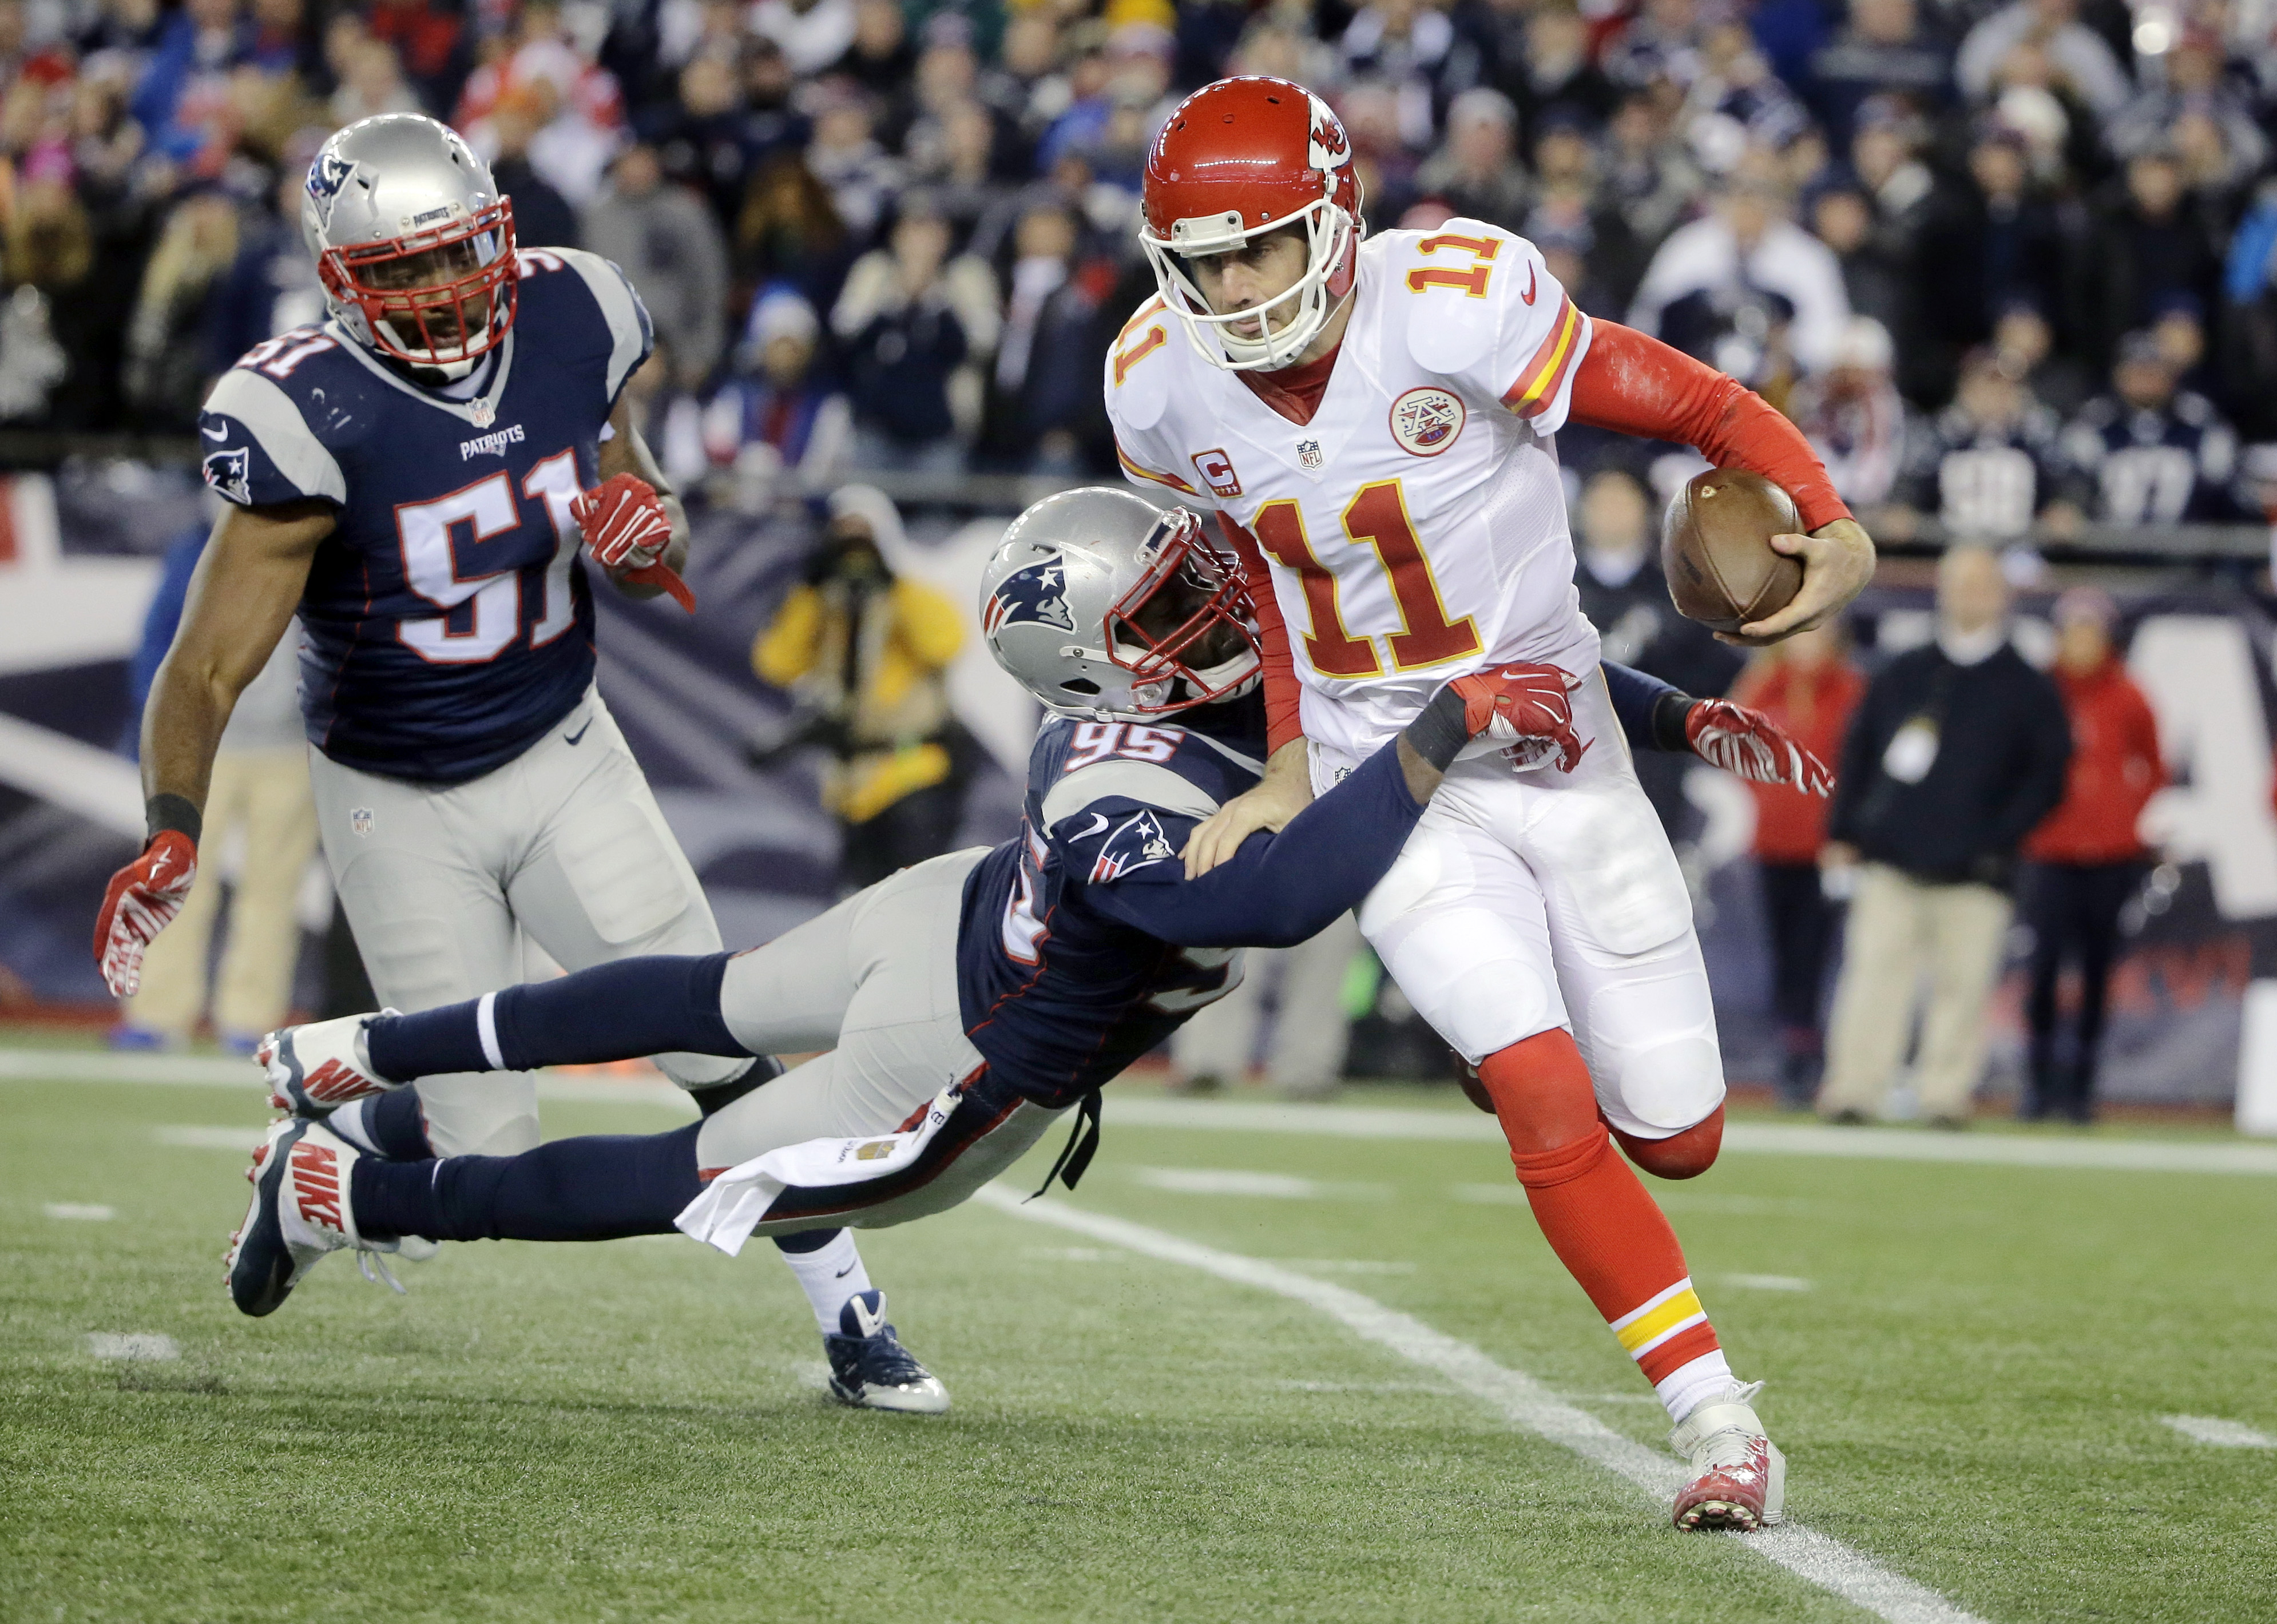 New England Patriots linebacker Jerod Mayo (51) and defensive end Chandler Jones (95) chase Kansas City Chiefs quarterback Alex Smith (11) in the second half of an NFL divisional playoff football game, Saturday, Jan. 16, 2016, in Foxborough, Mass. (AP Pho